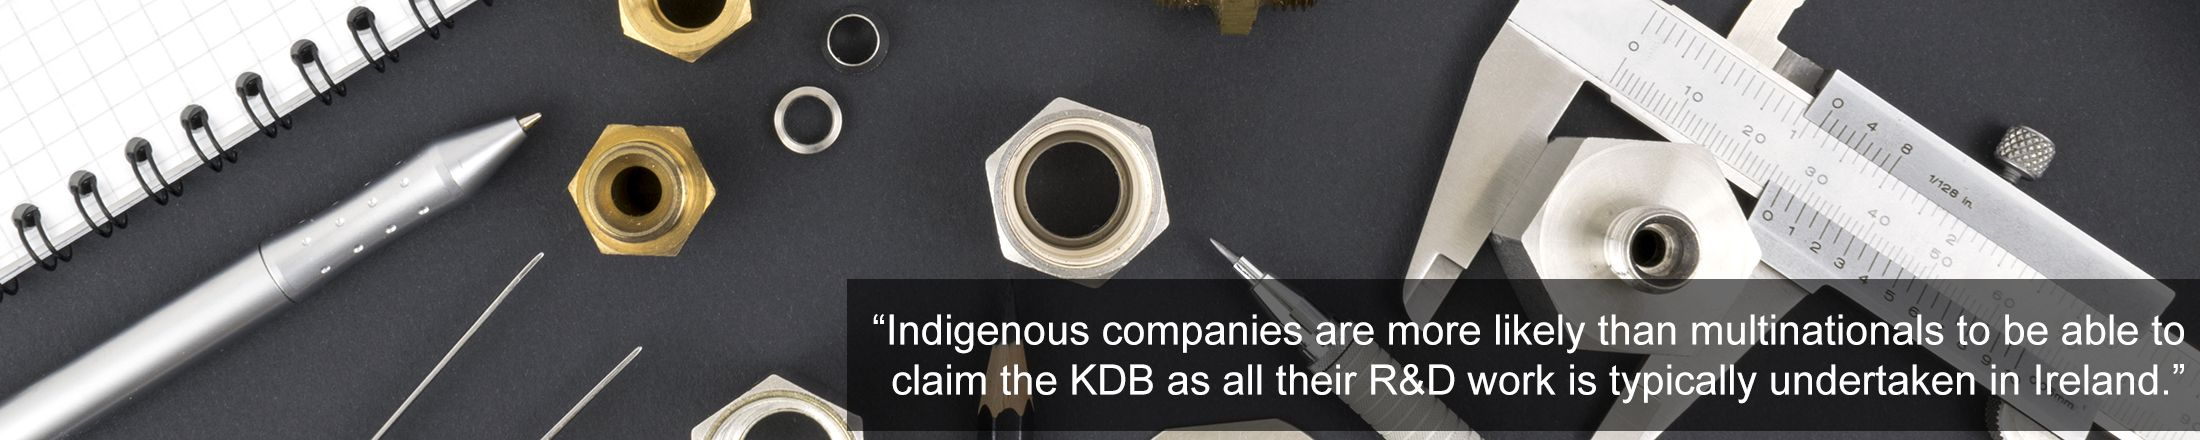 Interestingly, indigenous companies are more likely than multinationals to be able to claim the KDB as all their R&D work is typically undertaken in Ireland.